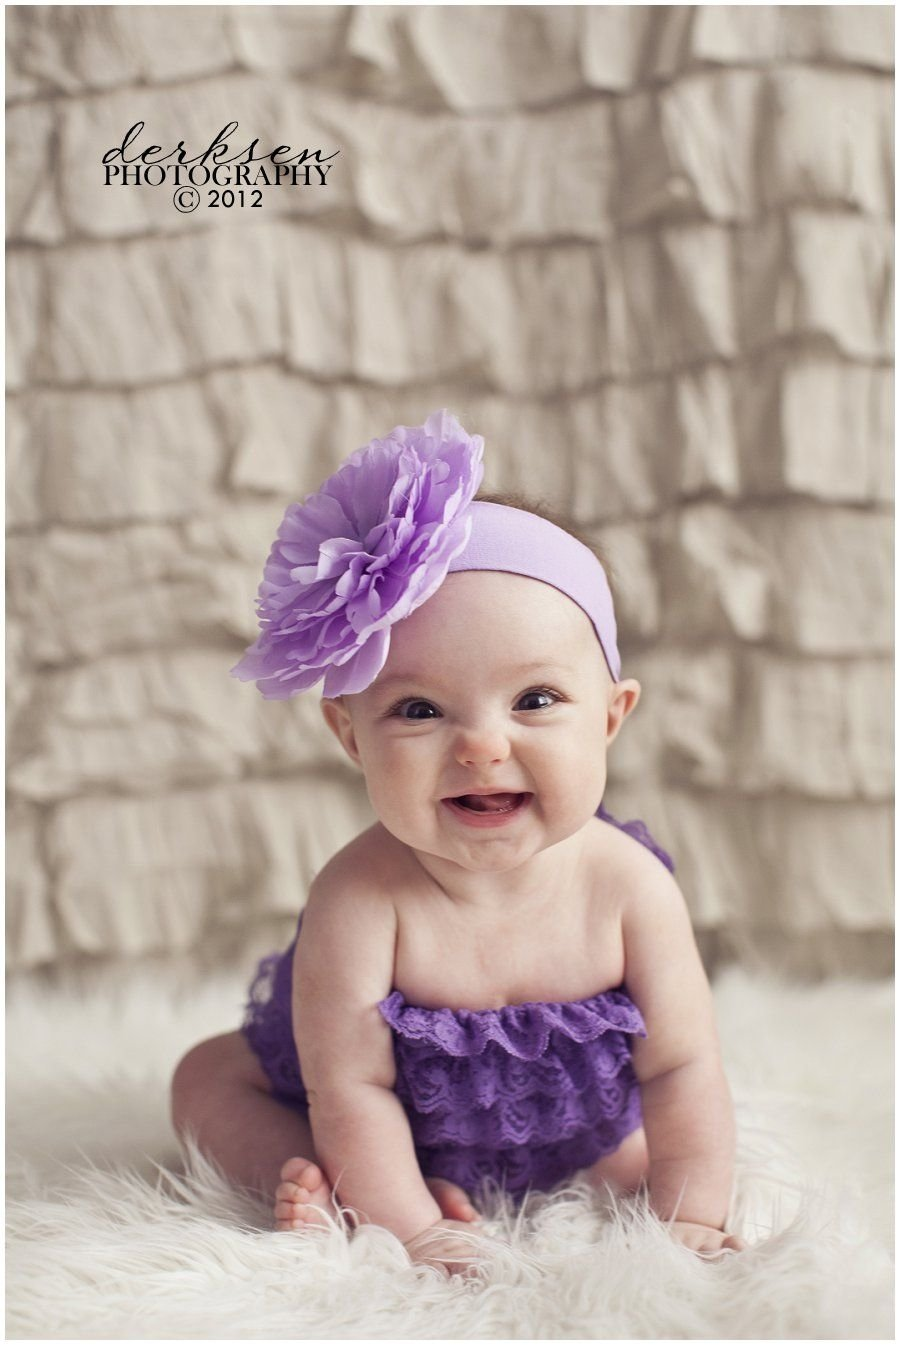 10 Stunning 6 Month Old Photo Ideas sweet little 6 month old the best age baby photography 3 2021